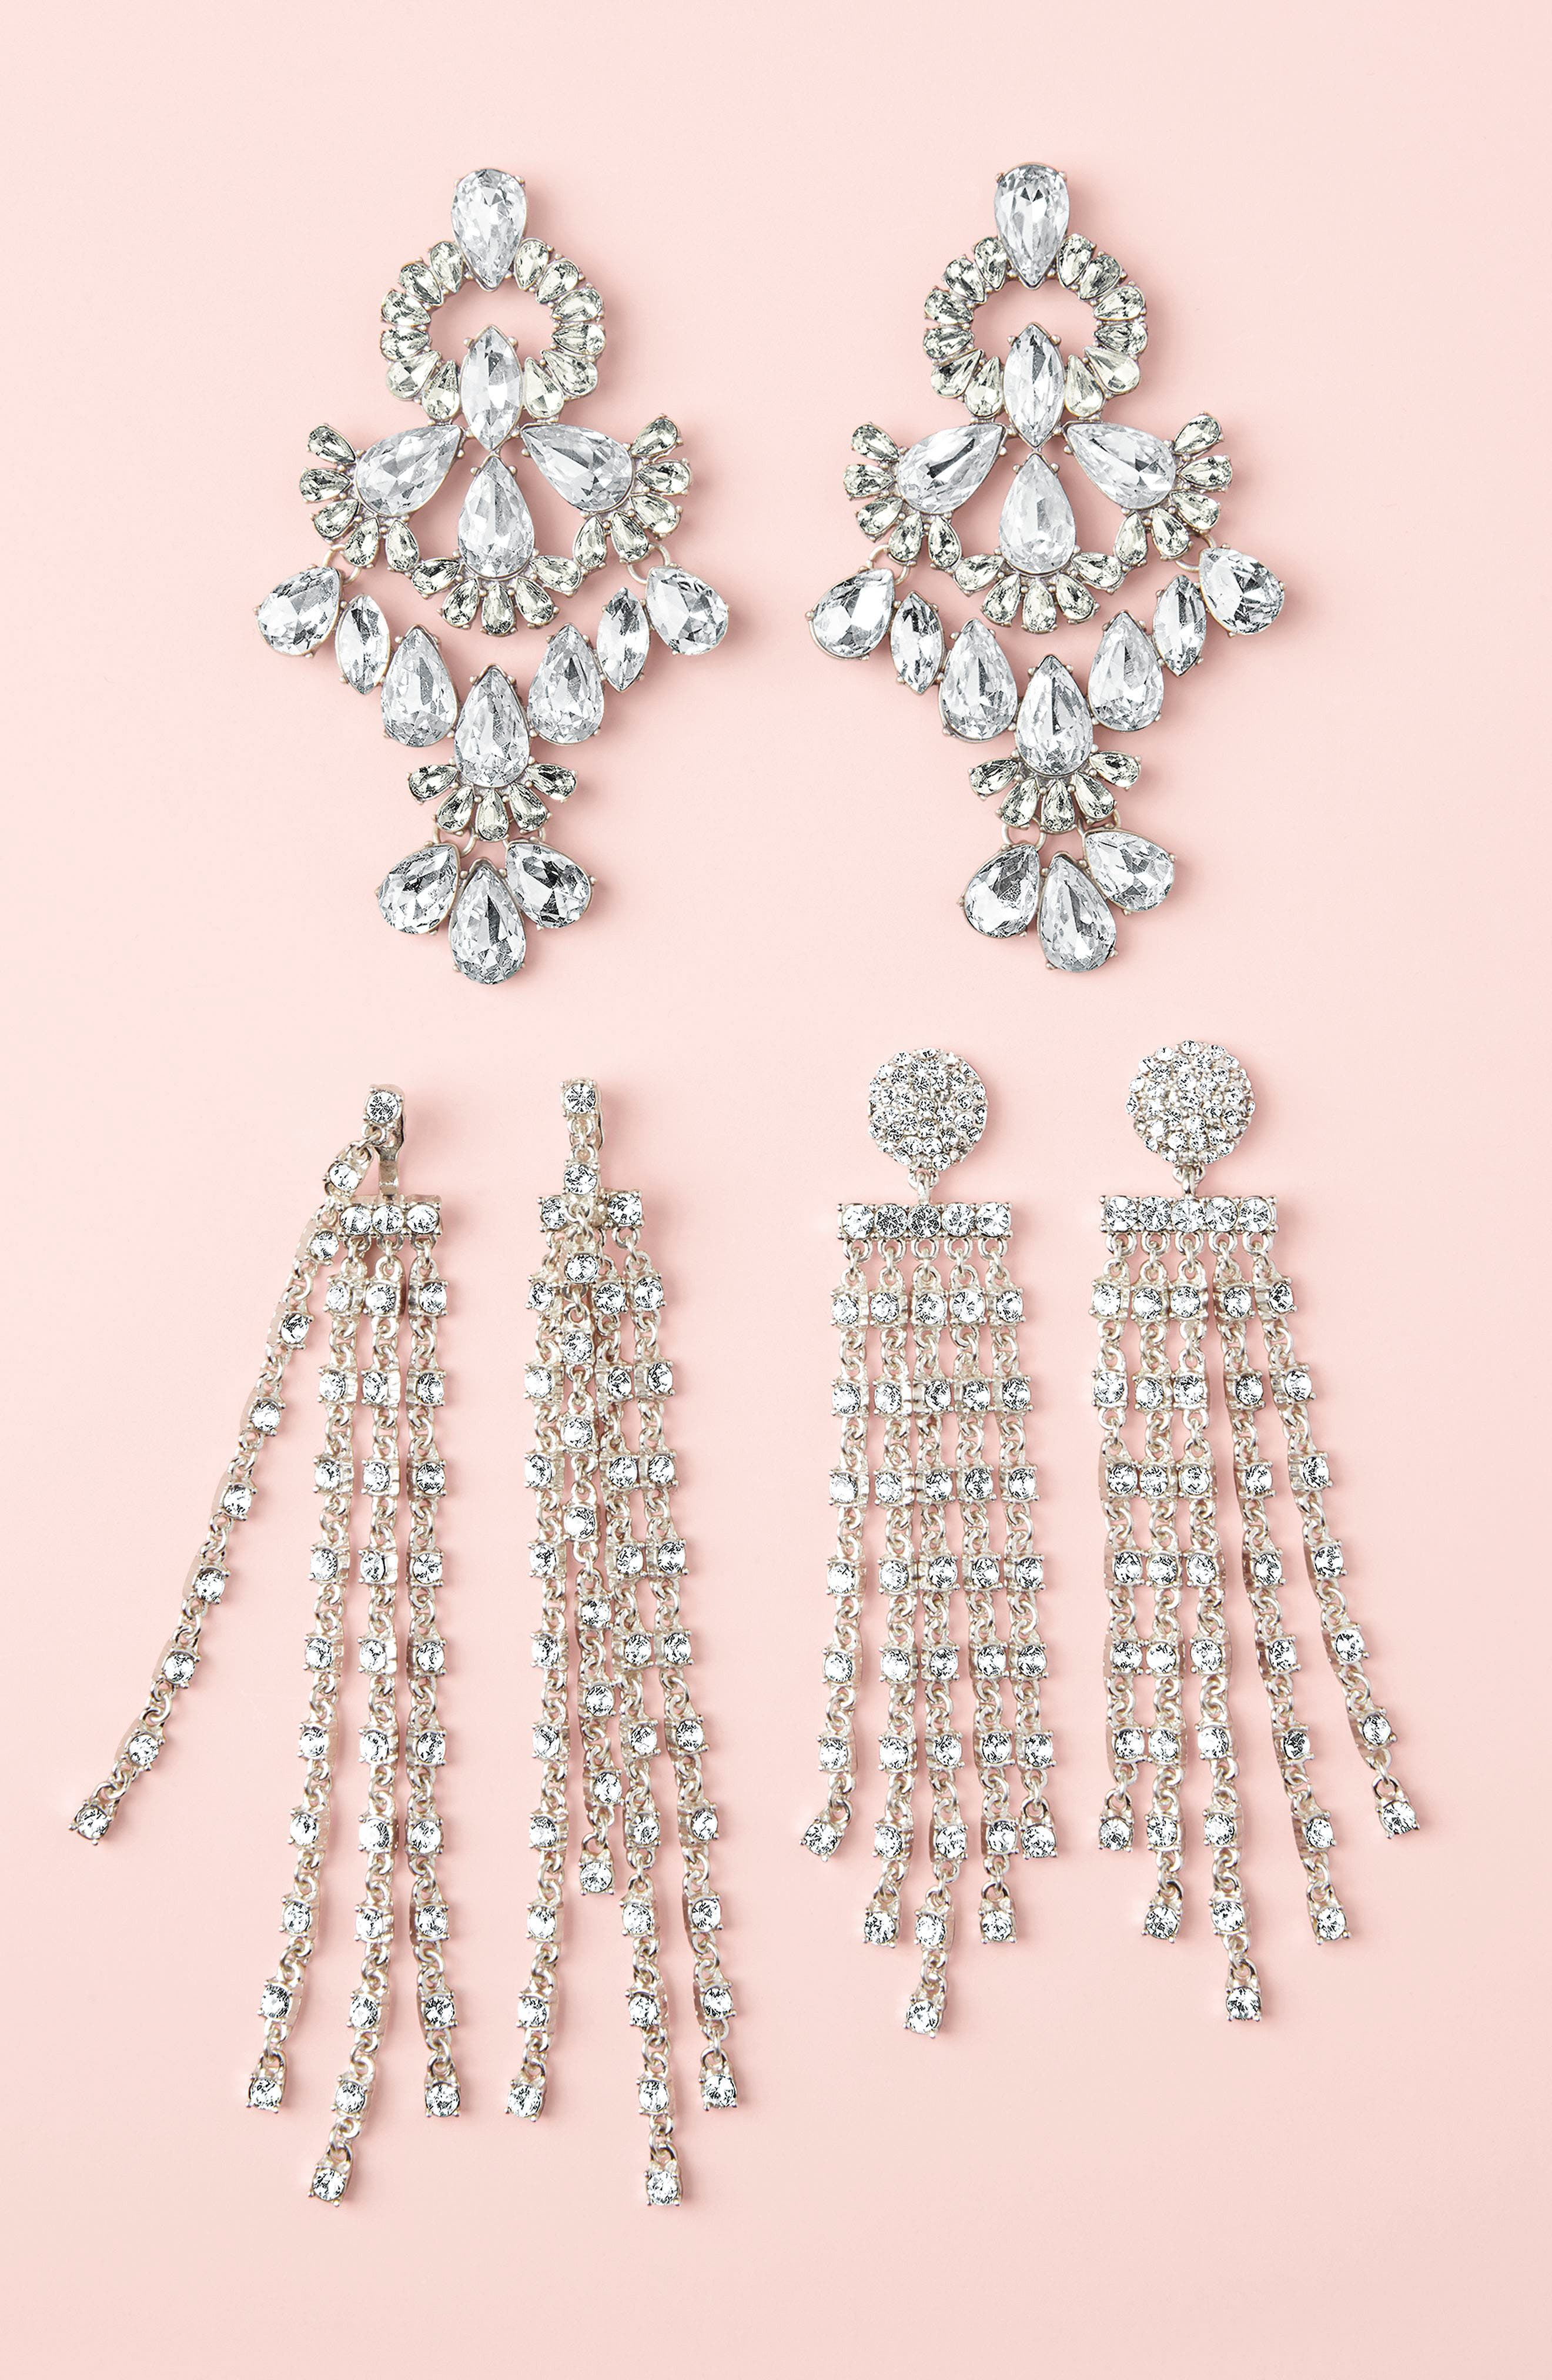 Symphony Crystal Statement Earrings,                             Alternate thumbnail 3, color,                             040